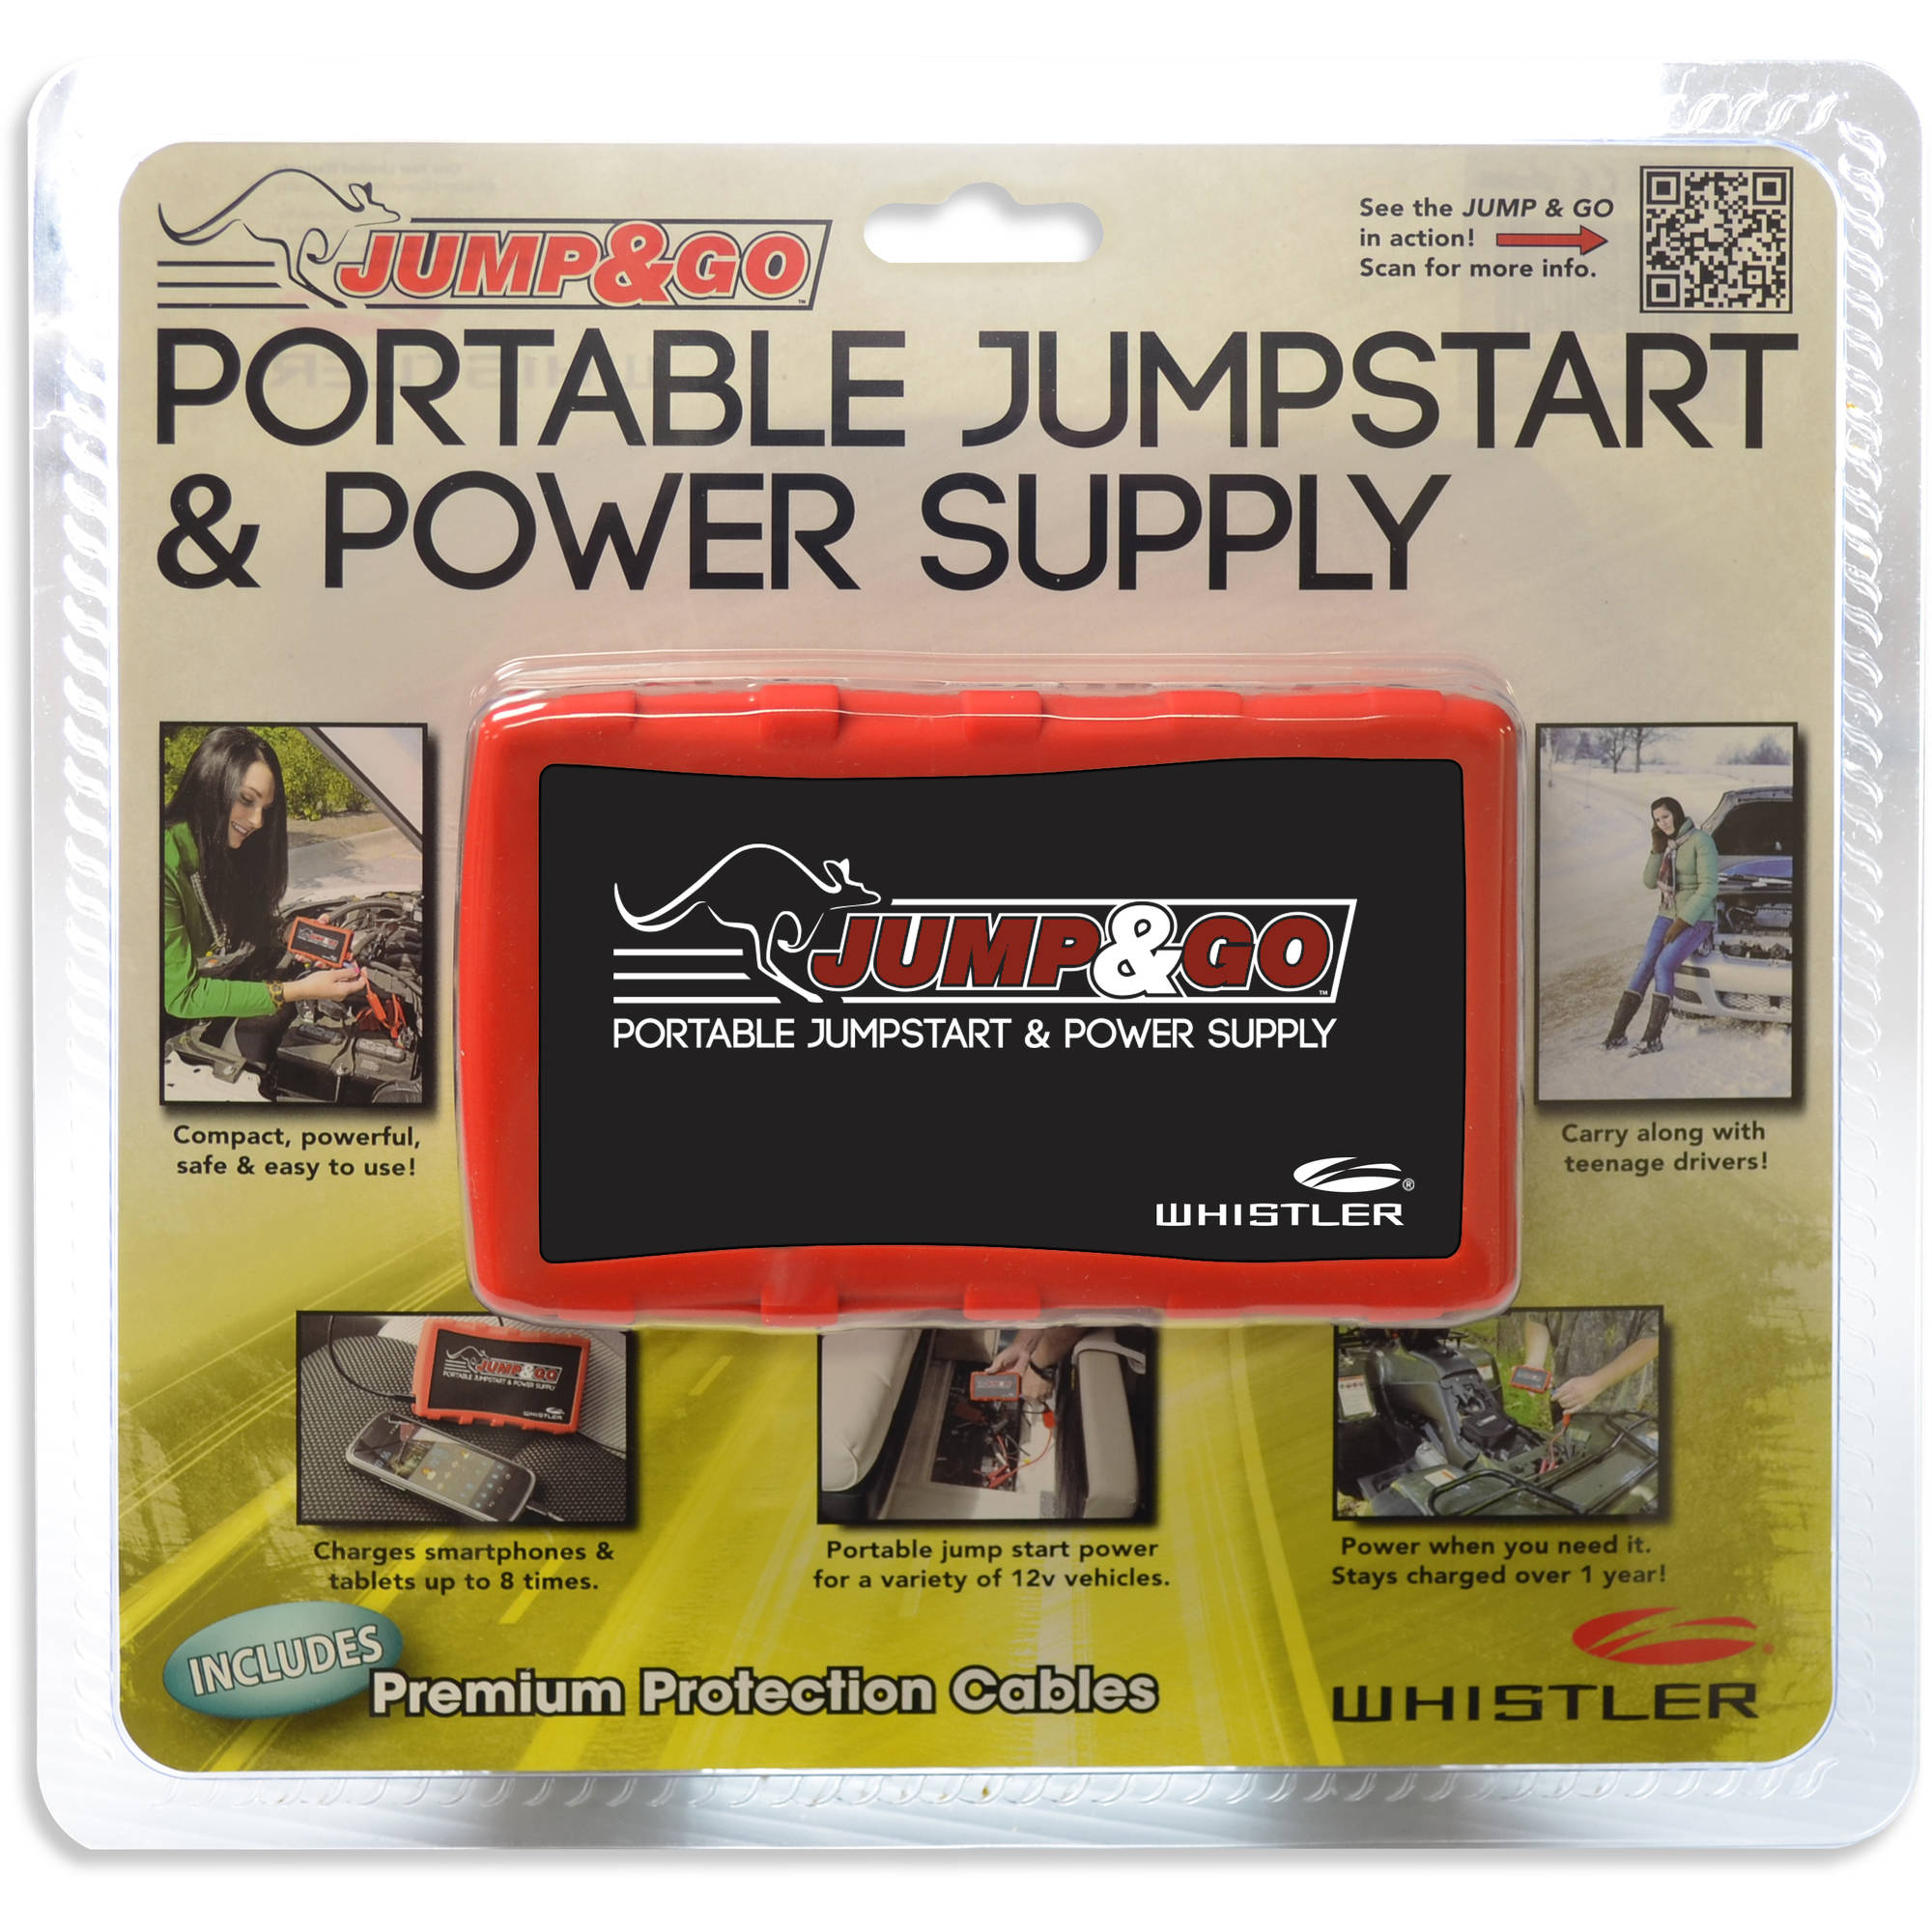 Whistler Jump&Go Portable Jumpstart and Power Supply